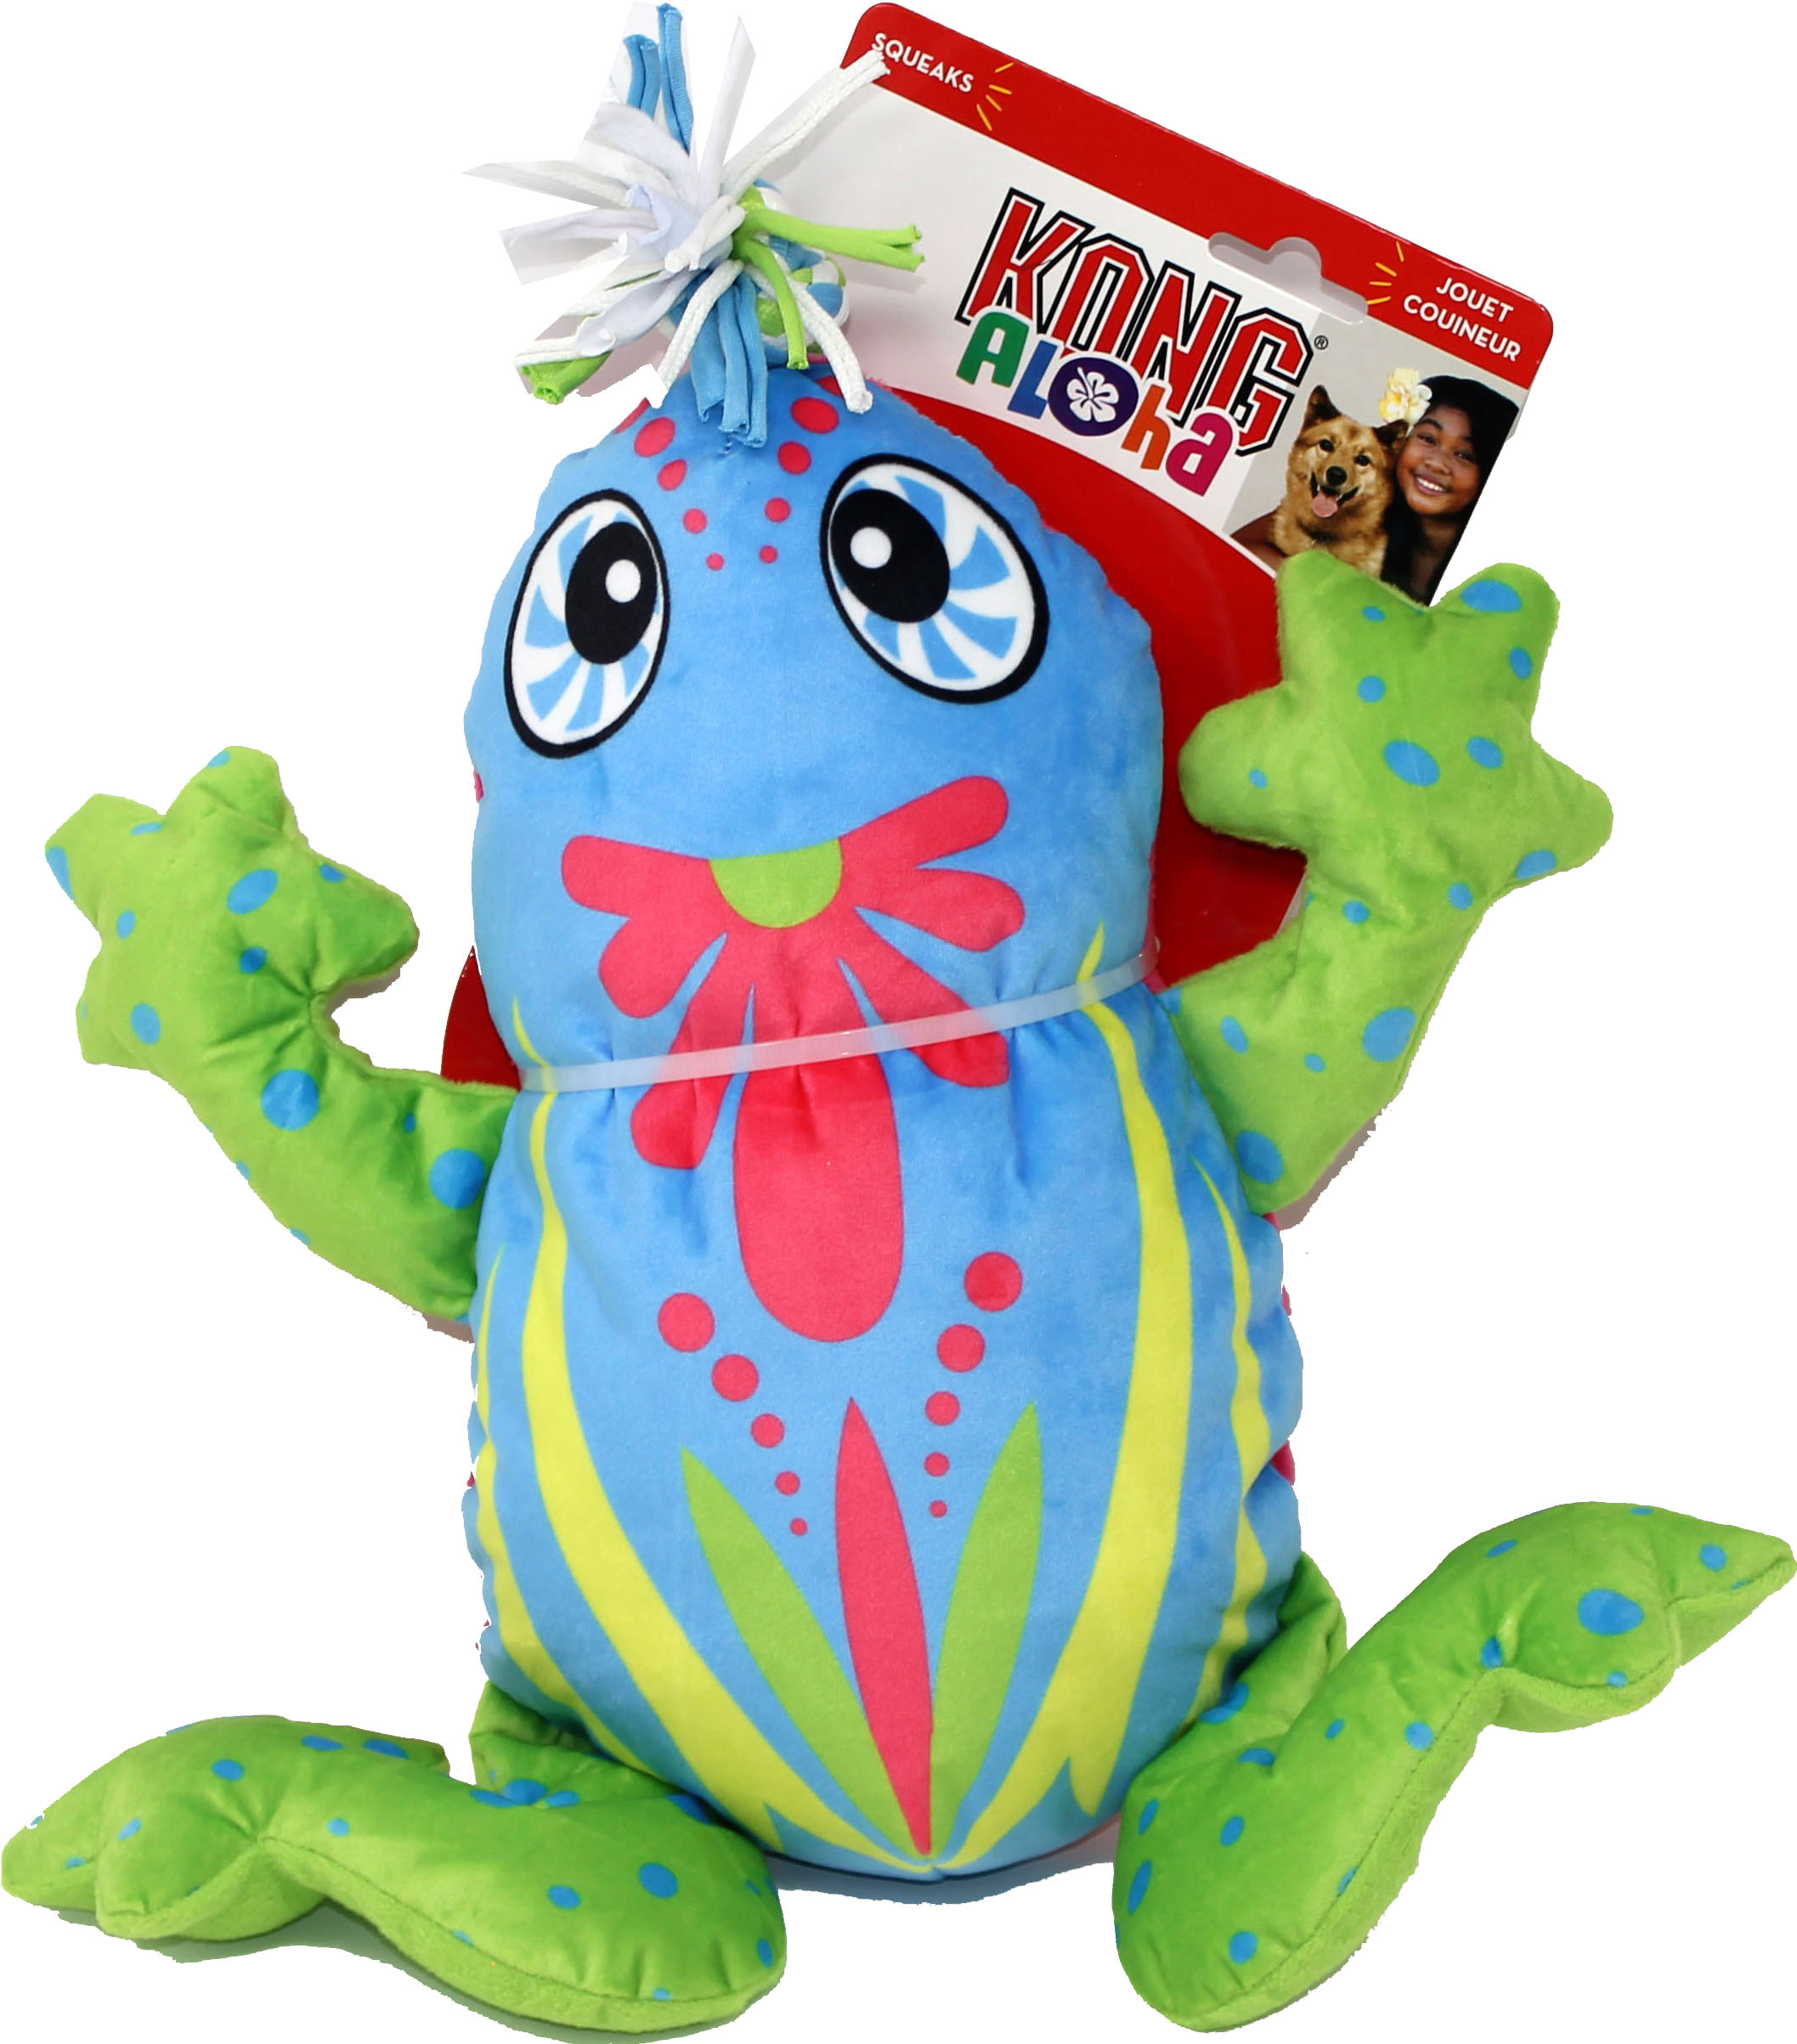 KONG Aloha Frog Tug Dog Toy, Blue, Small/Medium